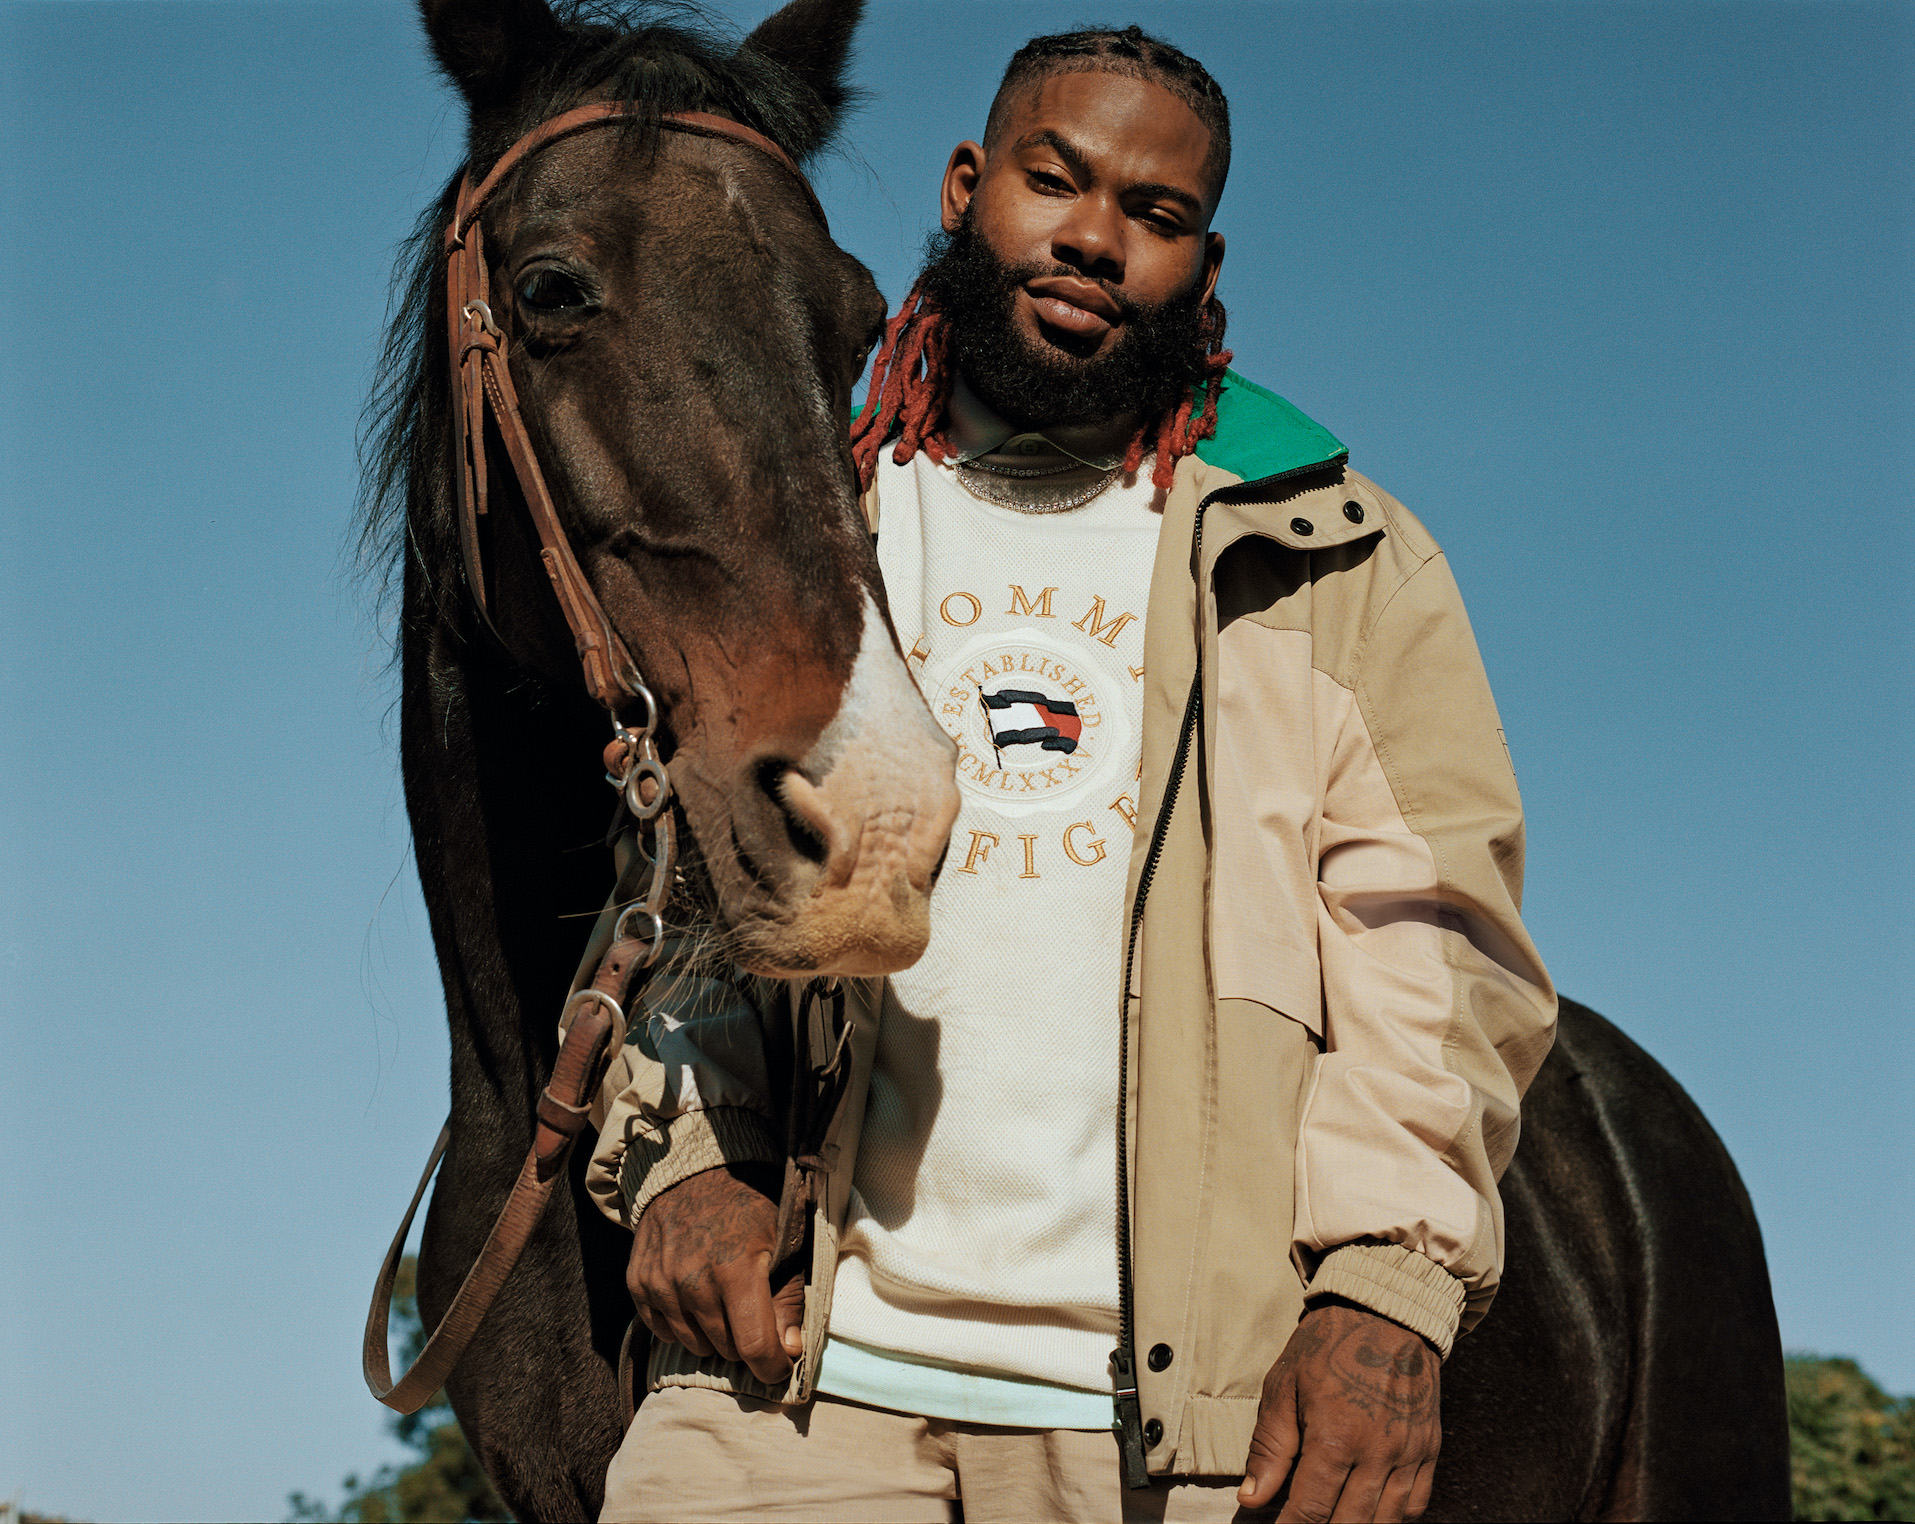 TOMMY HILFIGER SPRING 2021 COMPTON COWBOYS